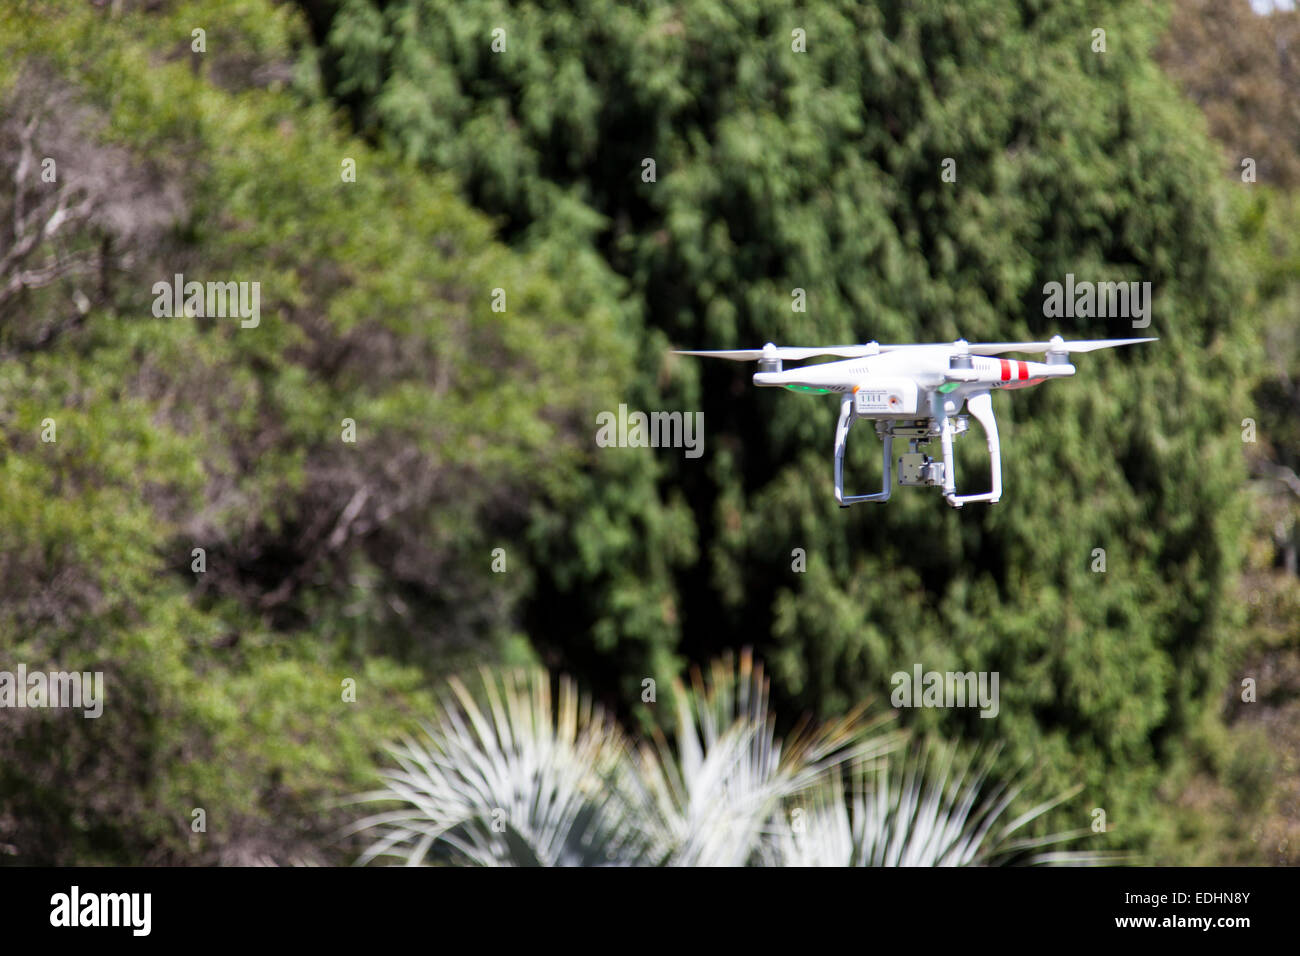 Drone camera hovering in a park in Australia - Stock Image